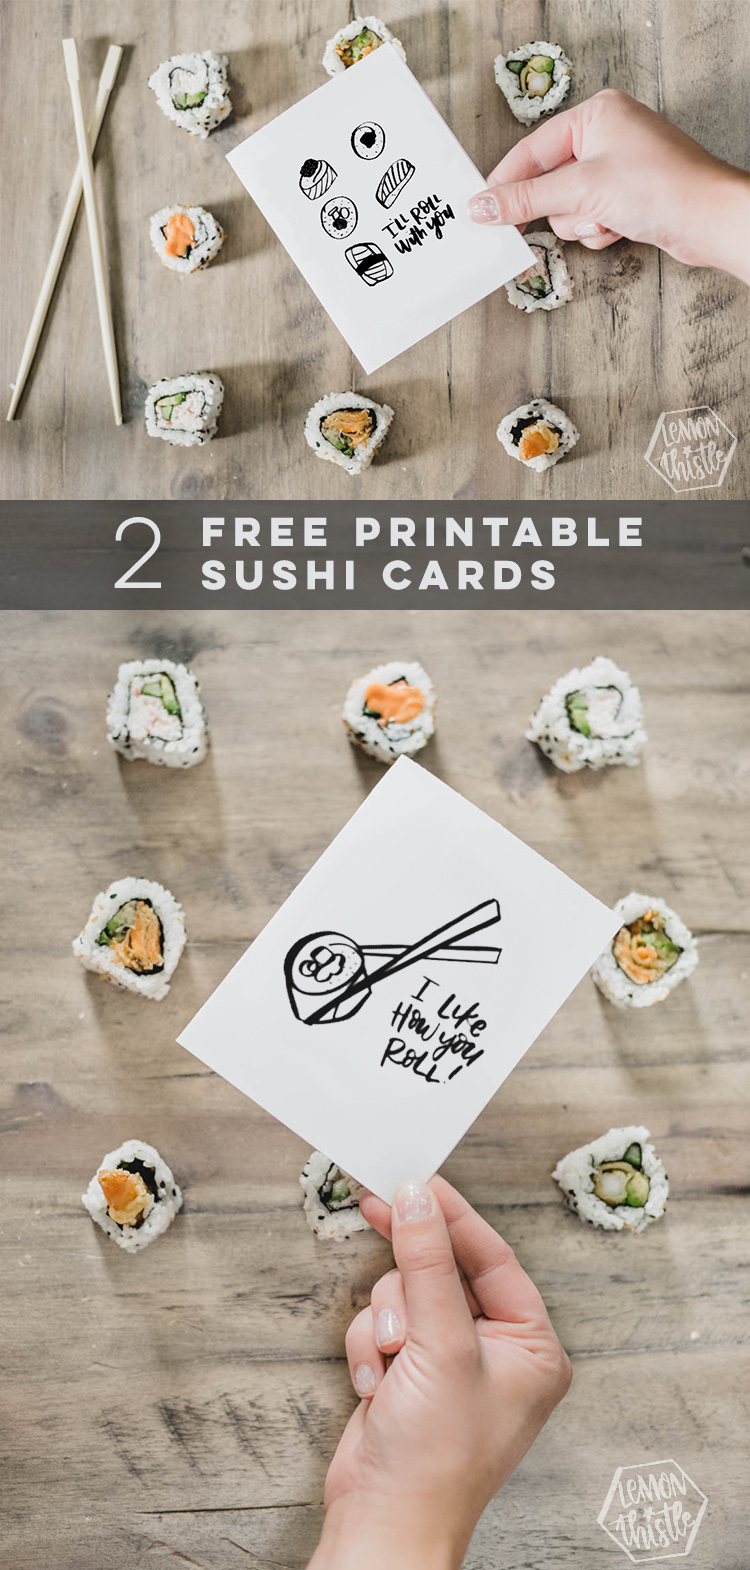 Two free printable sushi cards- collage image of two cards over sushi